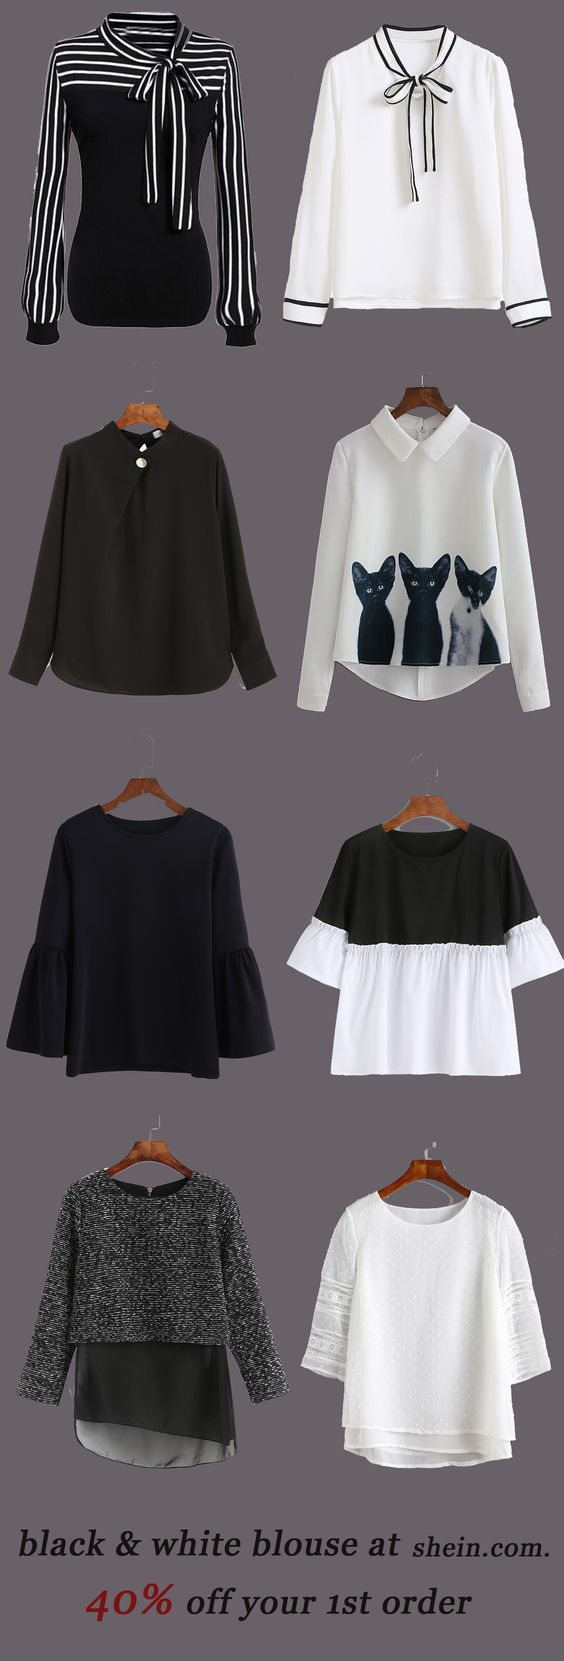 Black & white blouse collection for women. 40% off your 1st order! - Luxe Fashion New Trends